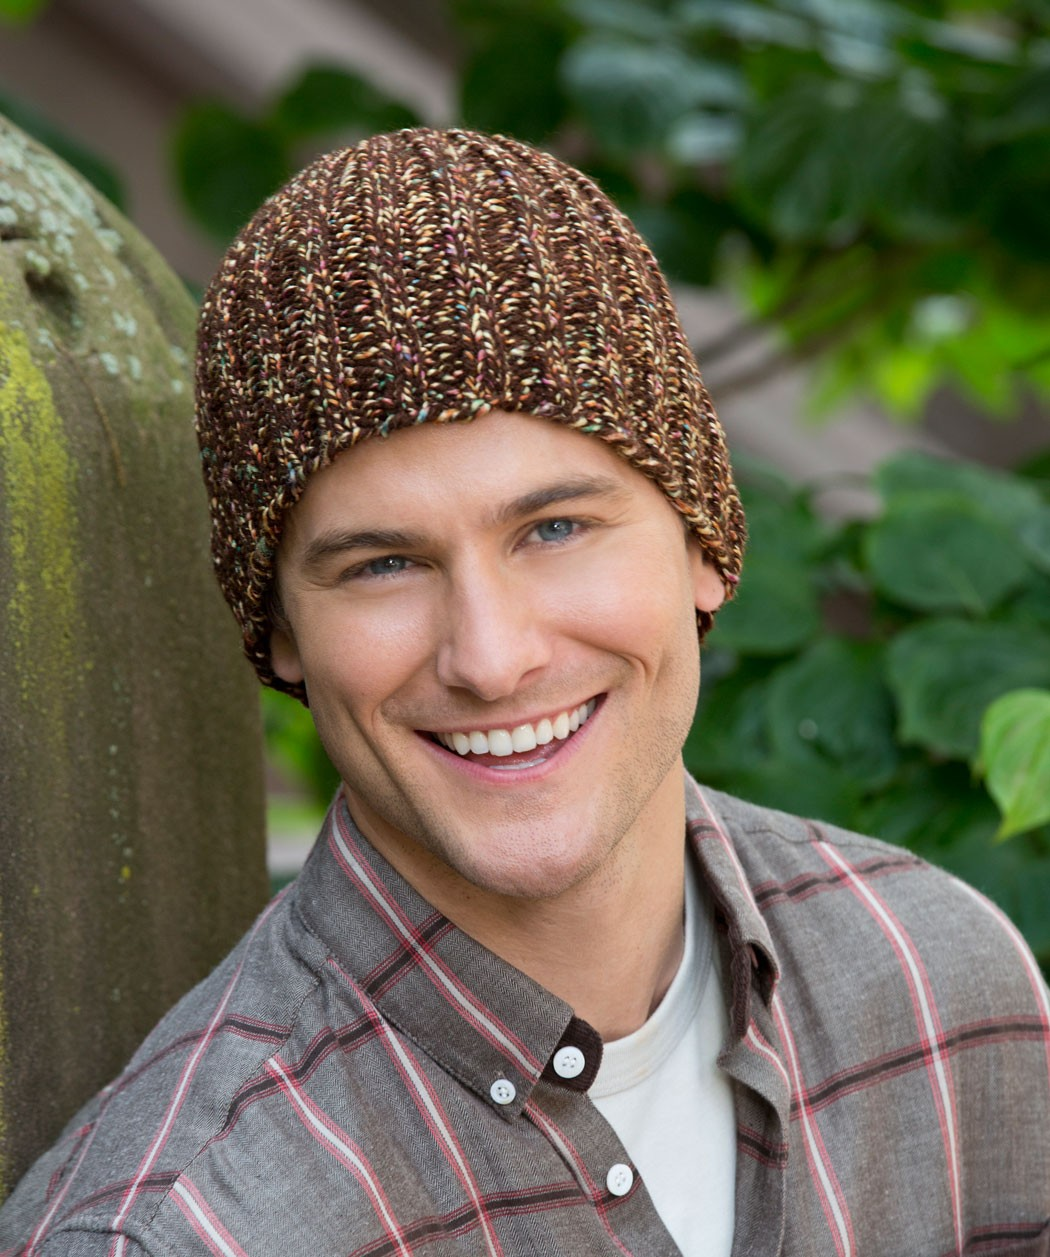 Images of Easy Men's Hat Knitting Pattern